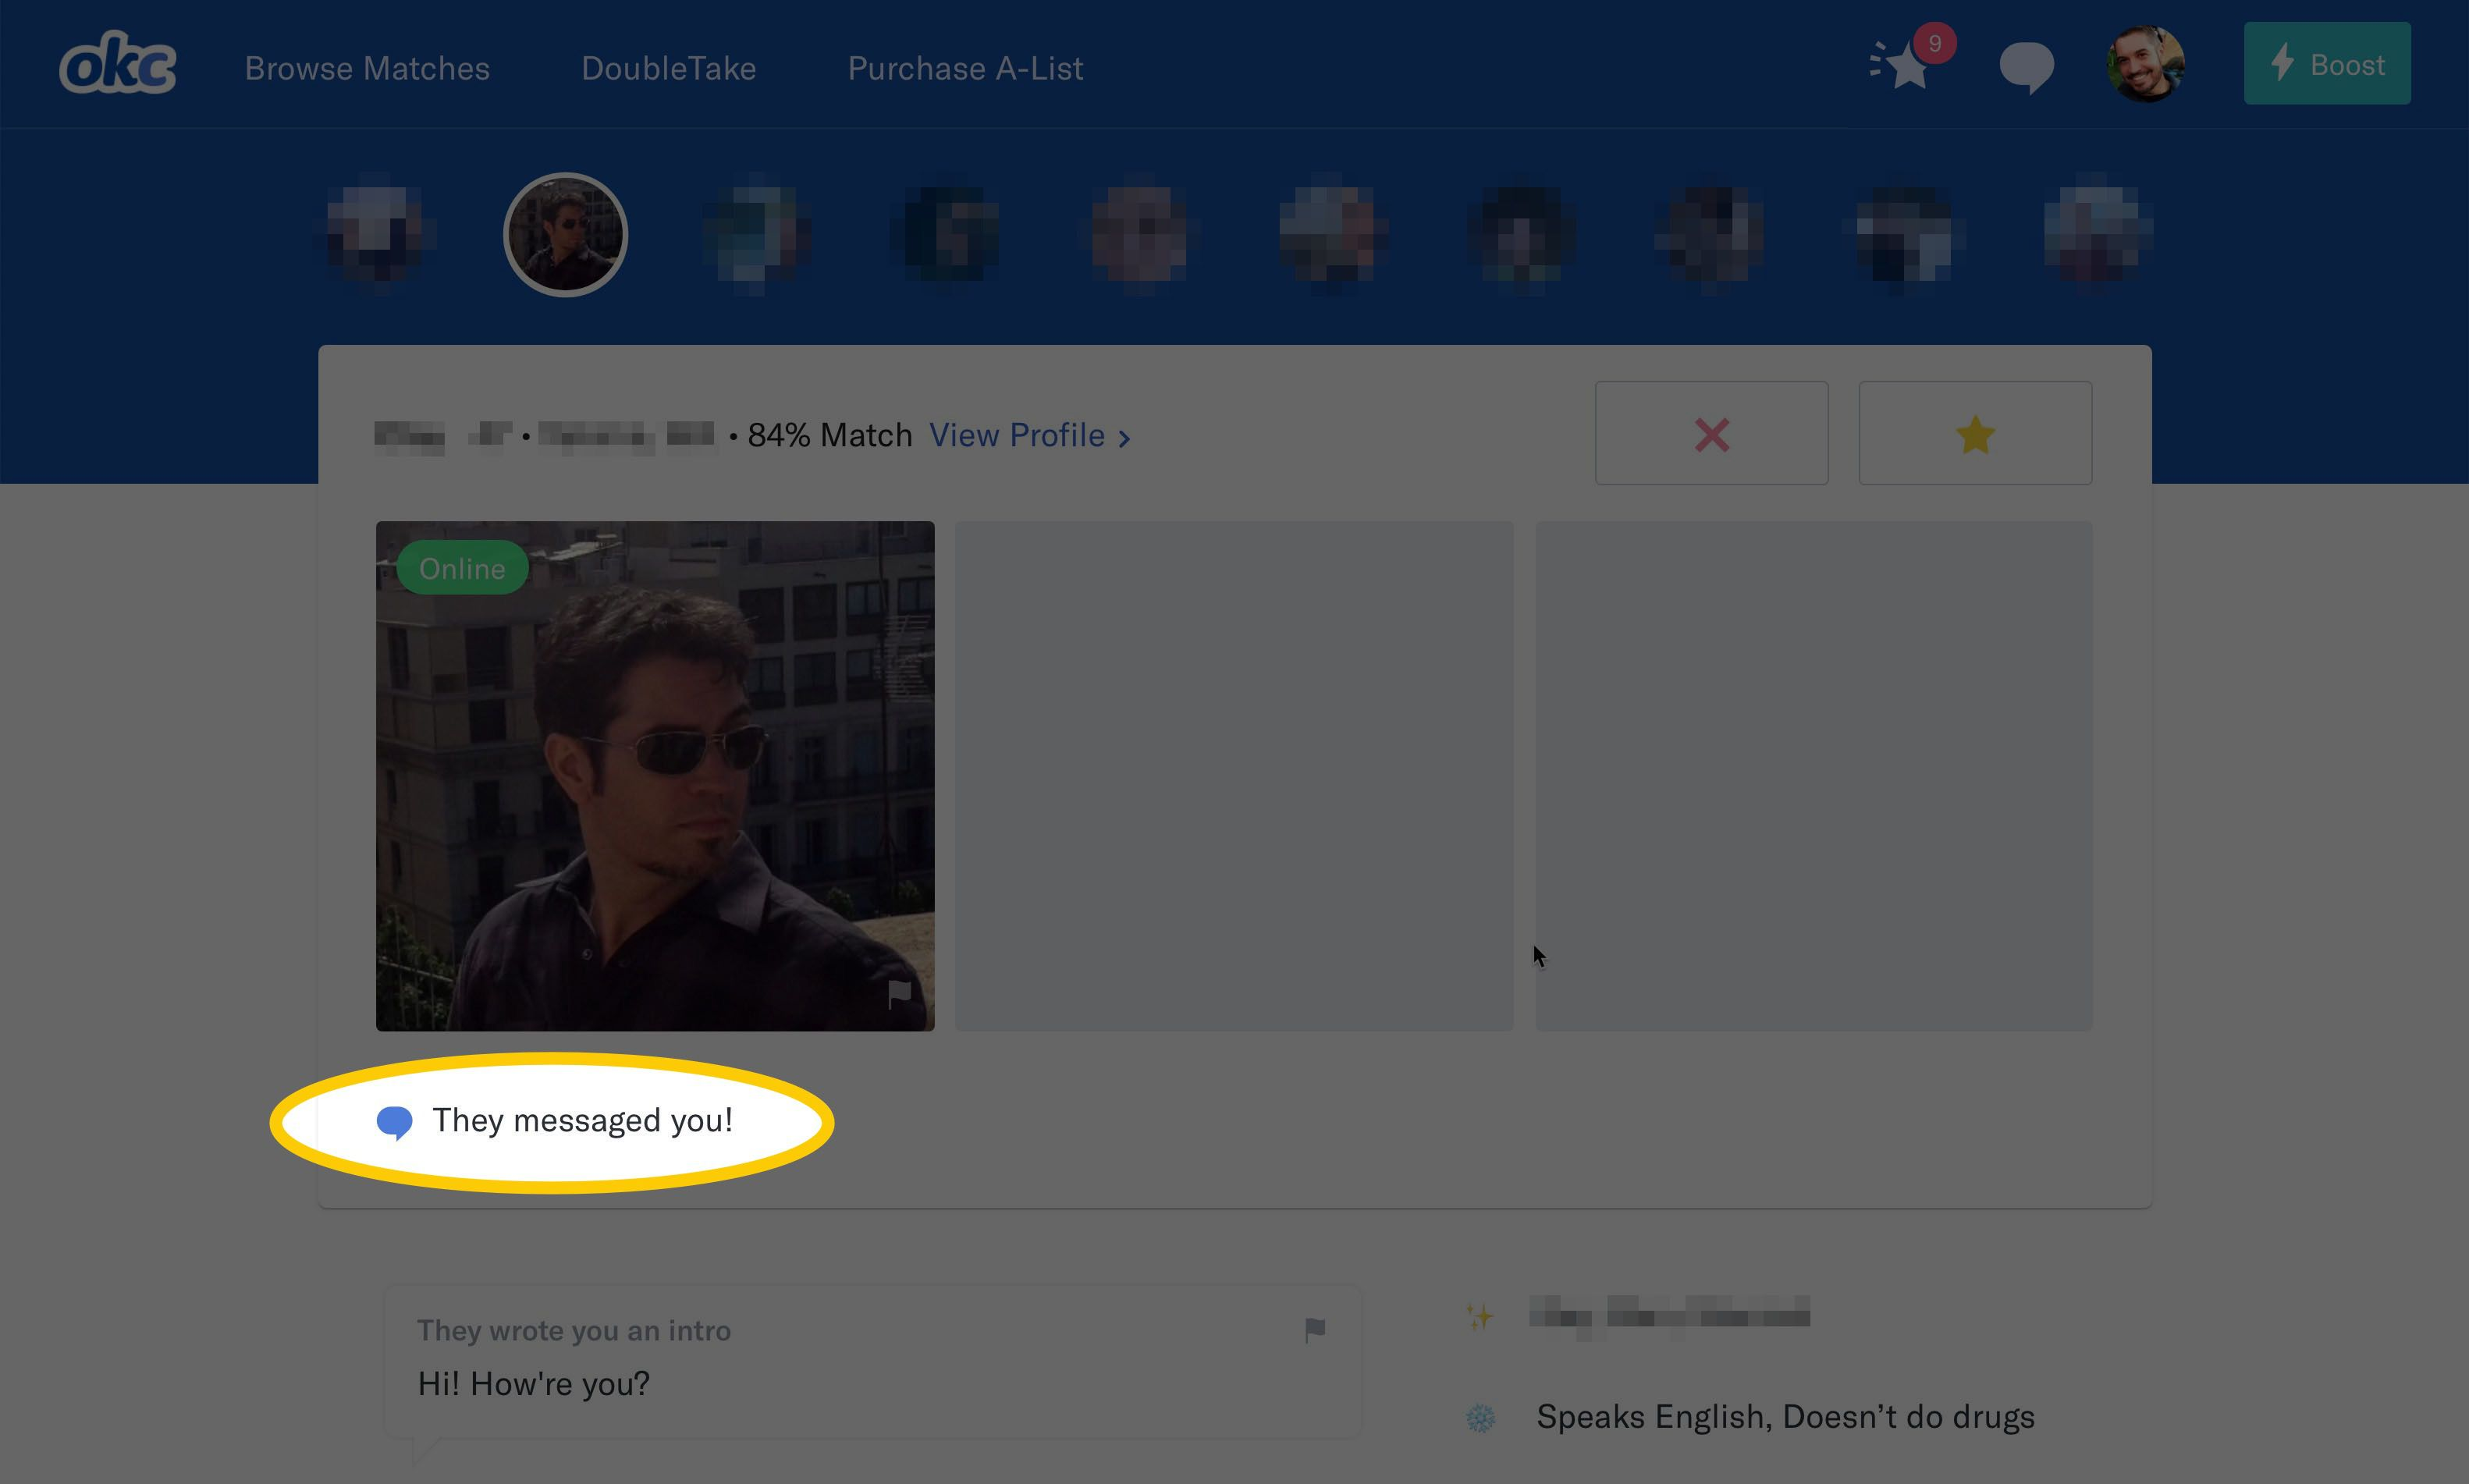 how to use okcupid